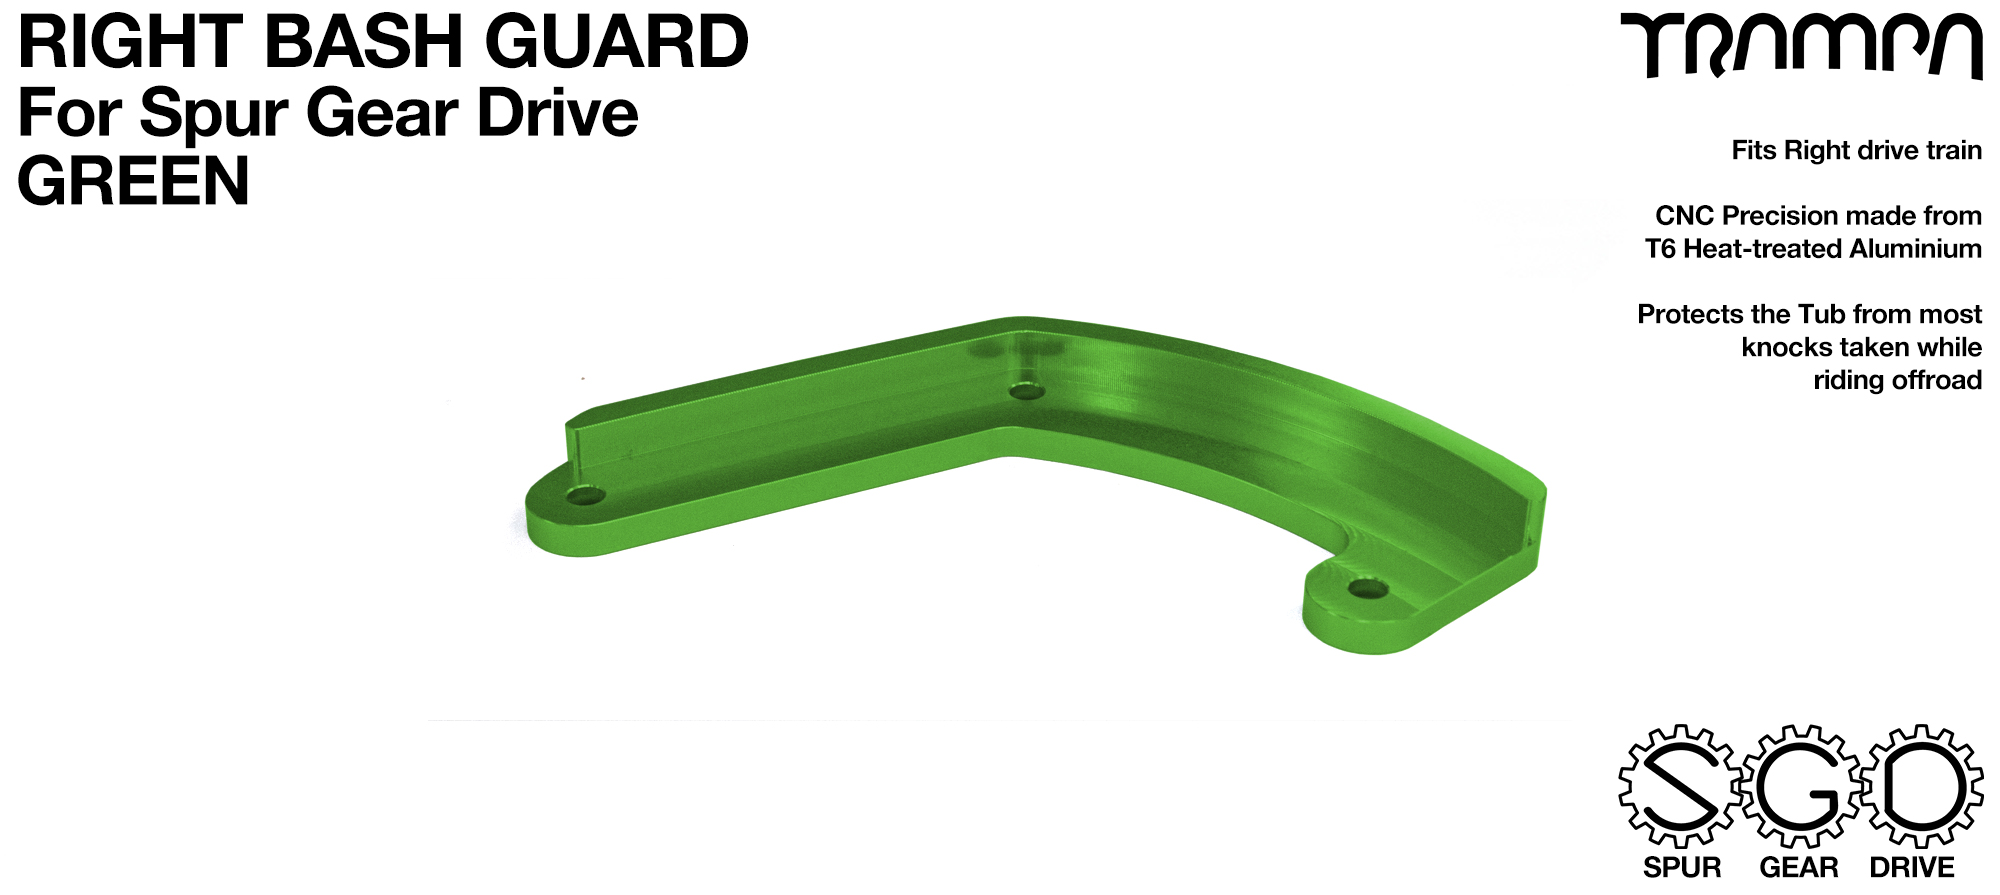 MkII Spur Gear Drive Bash Guard - RIGHT Side - GREEN